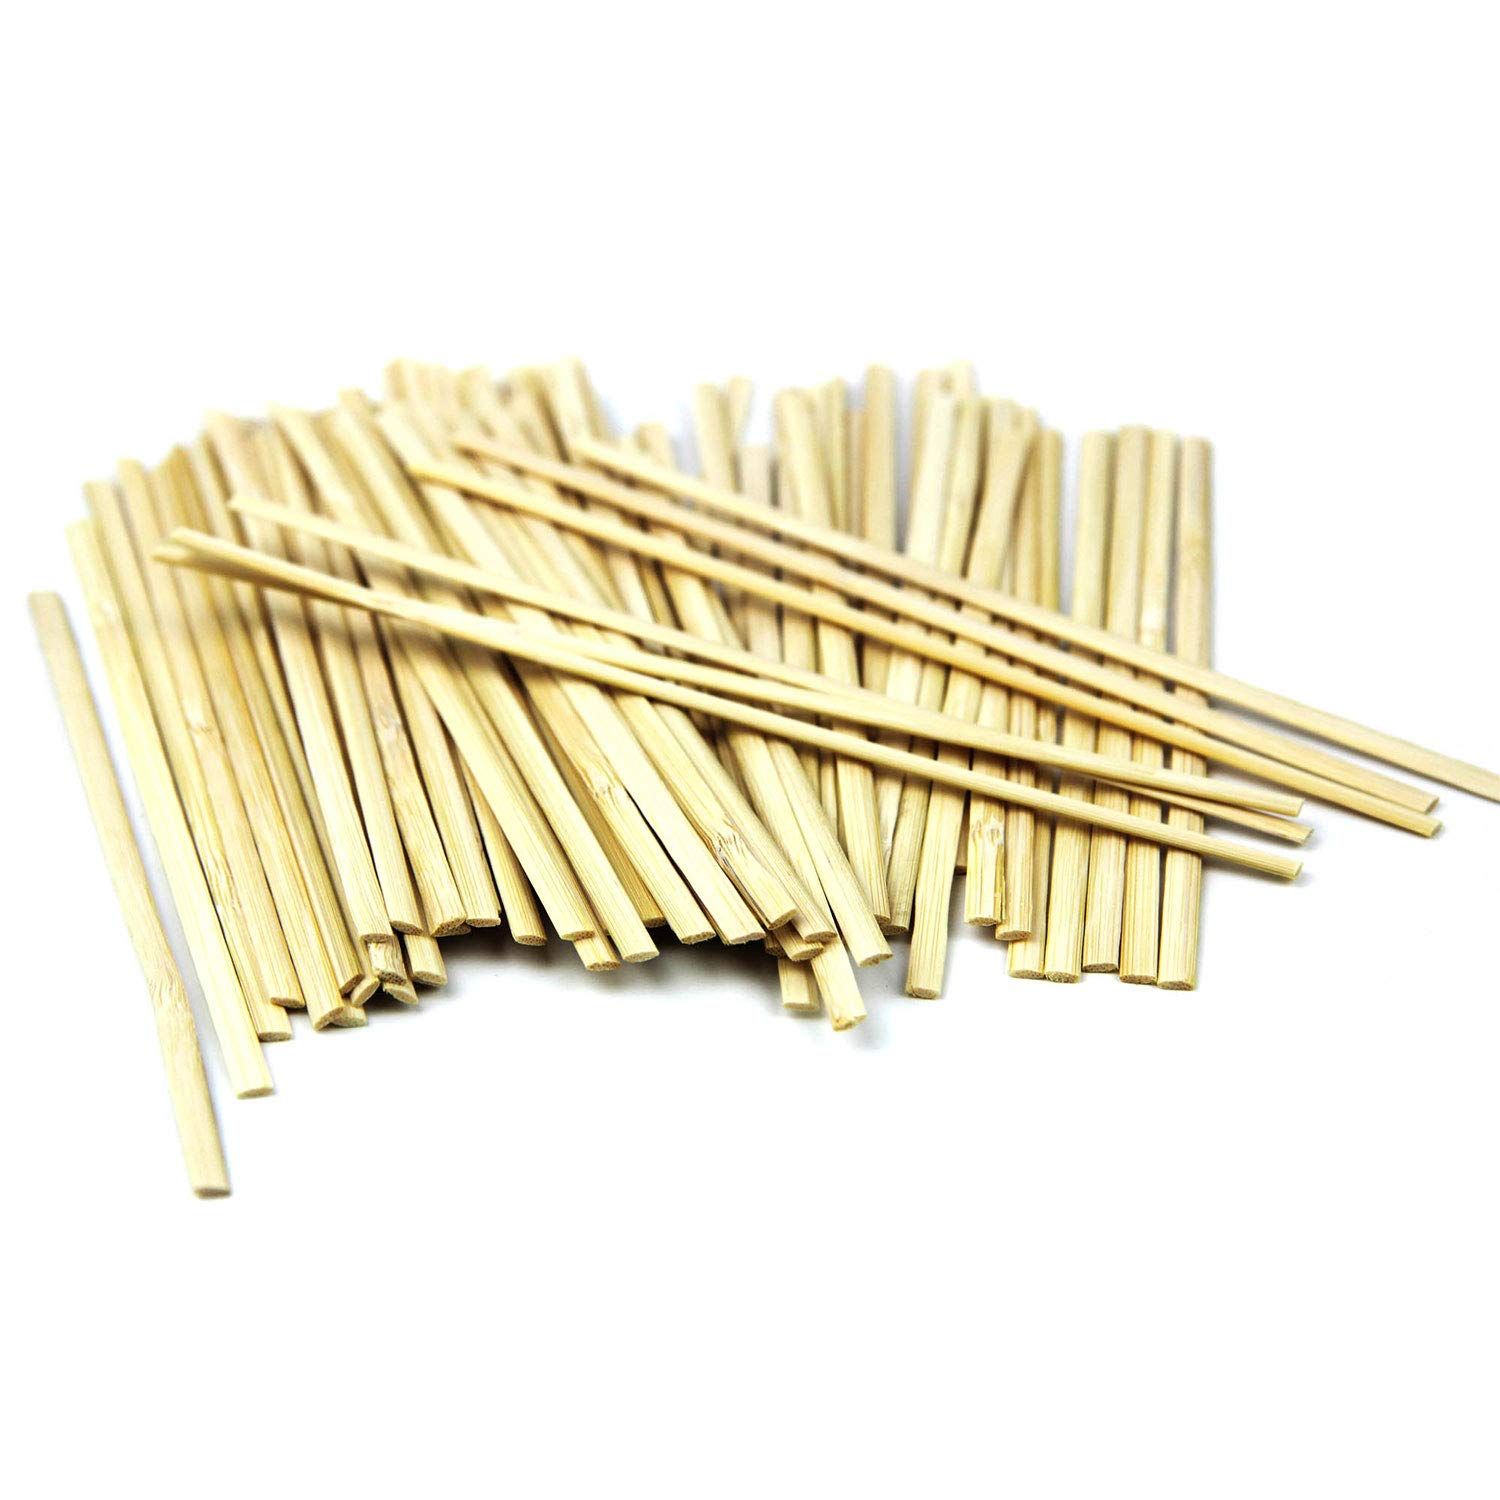 Flat UPlama 600PCS 5.5 Inch Bamboo Coffee Stirrers,Eco-Friendly Splinter Biodegradable Stir Sticks Perfect For Hot /& Cold Beverages As Coffee /& Tea Alternative Bamboo Solution To Plastic Stirrers